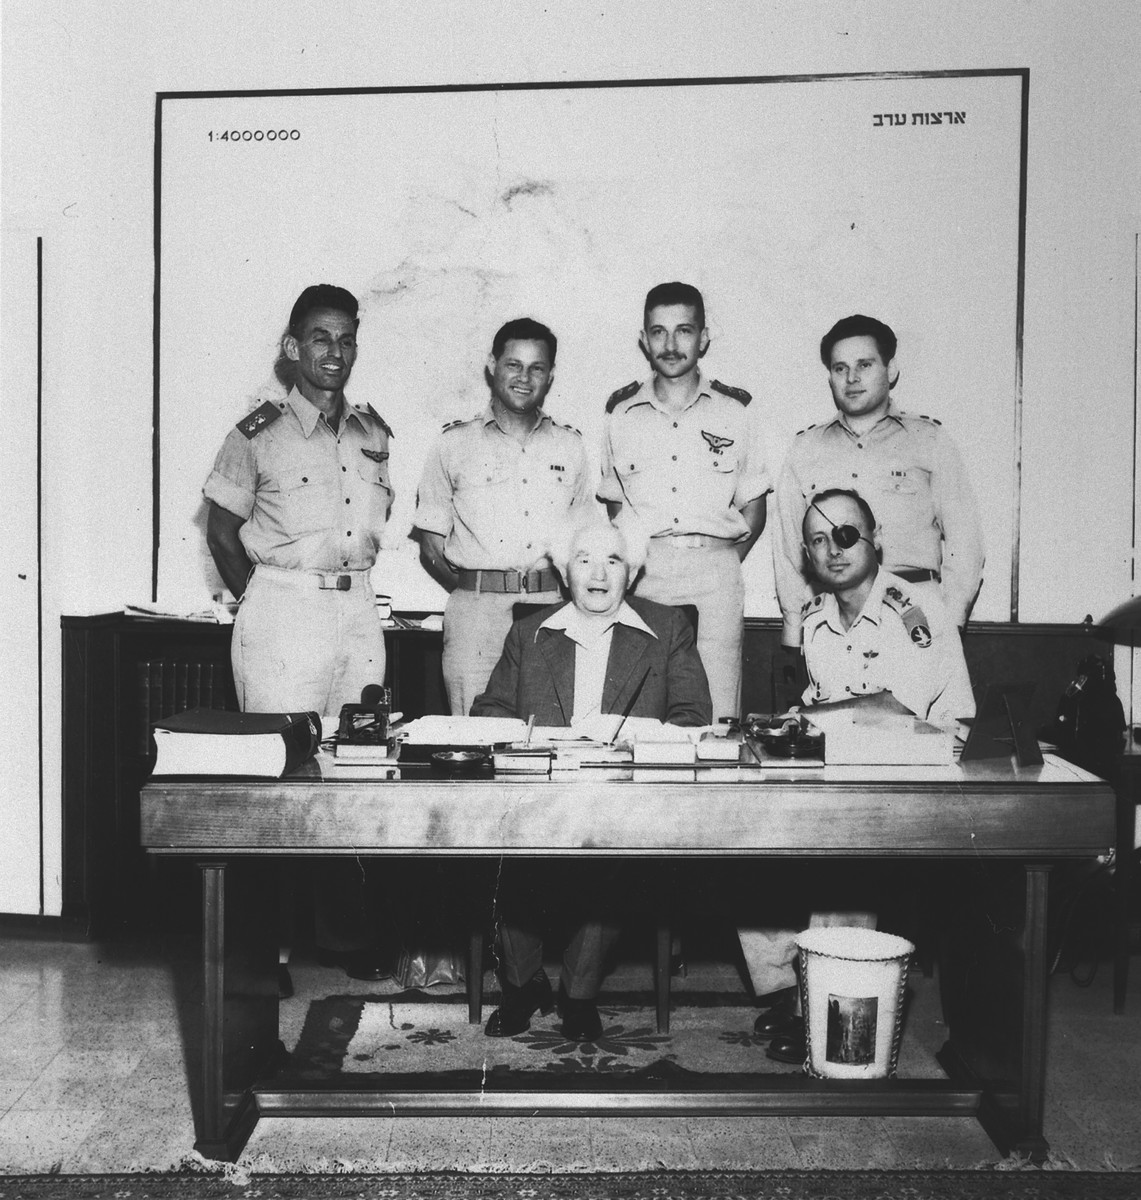 Prime Minister David Ben-Gurion and General Moshe Dayan pose with members of the Israeli Armed Forces.  Standing from left to right are Geda Shochet, Yossi Harel, Ezer Weizman and Nachman Karni, spokesman for the Israeli Defense Force from 1952-1954.